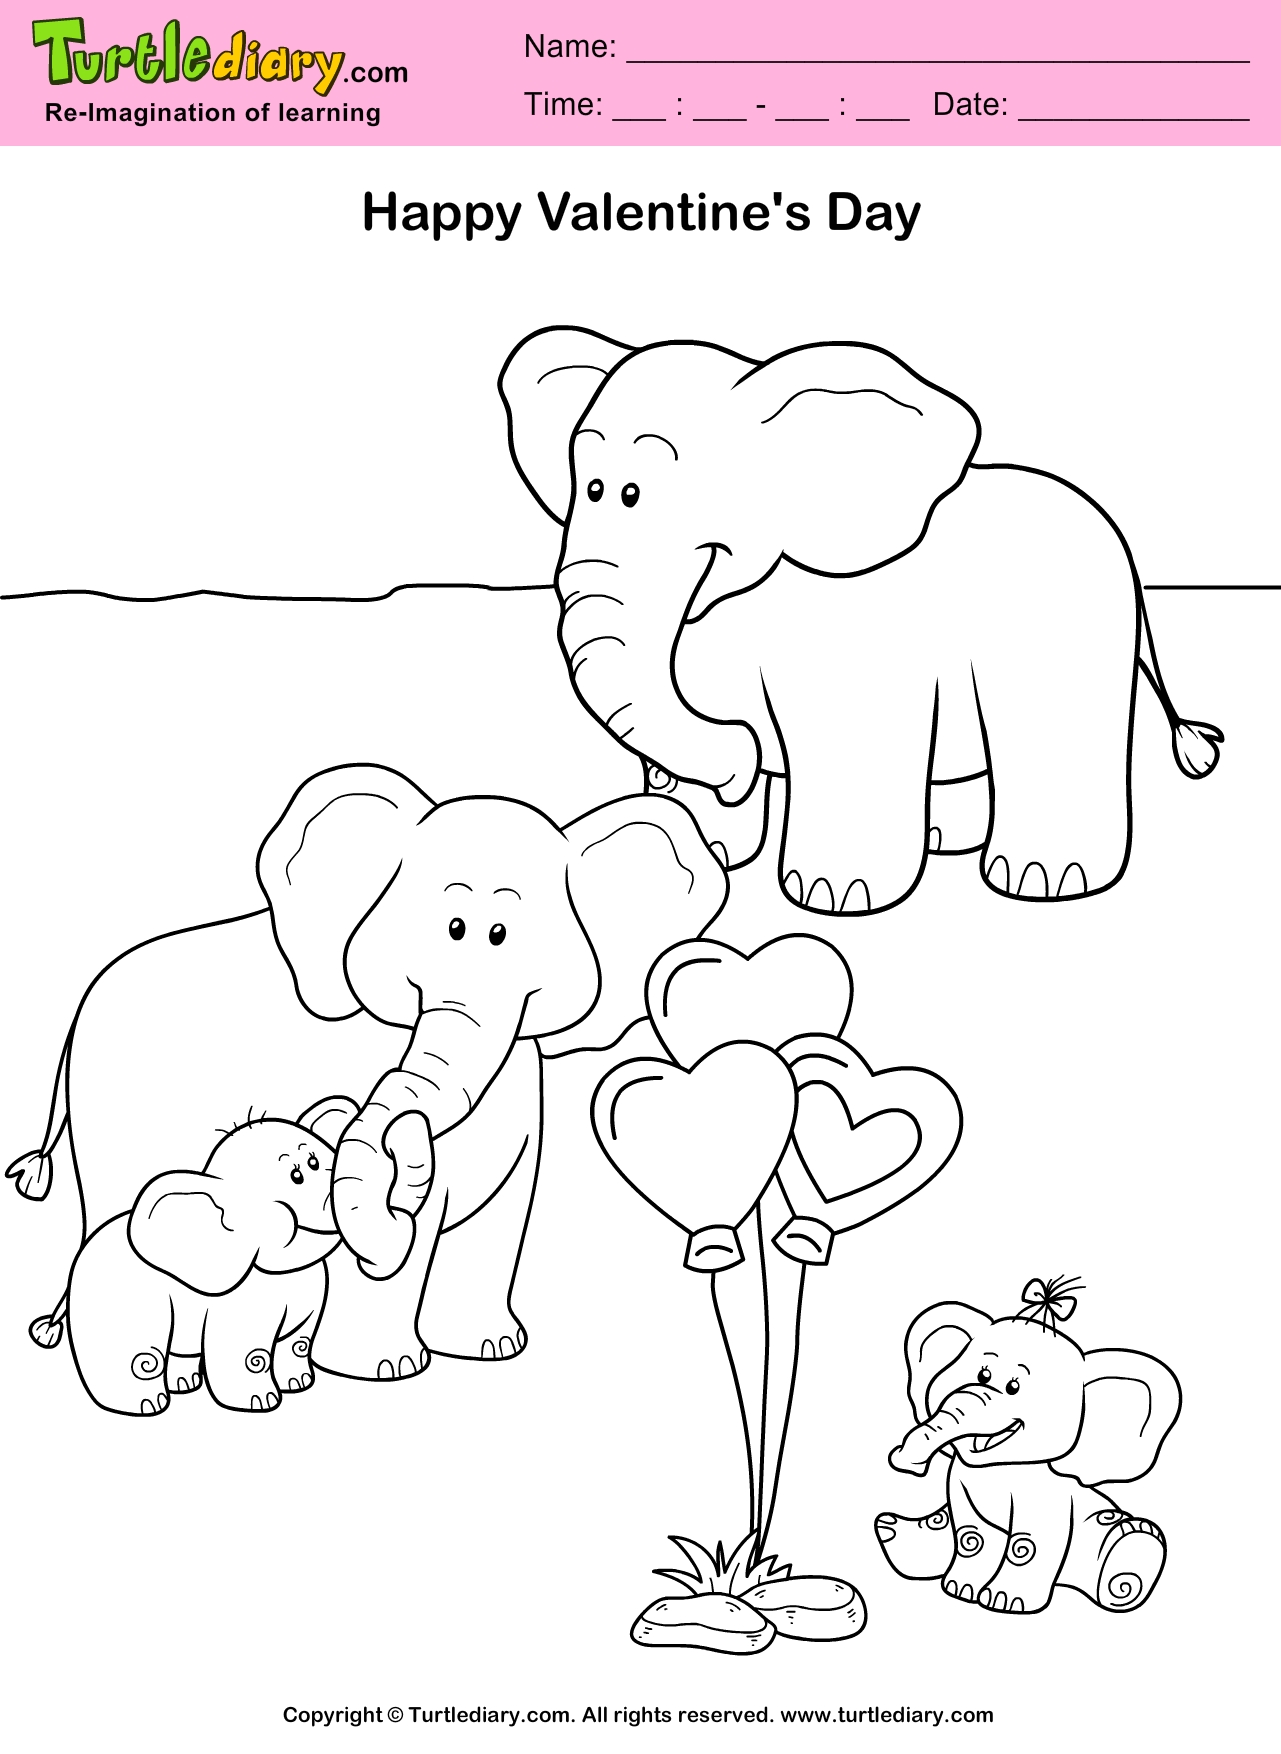 Elephants Valentine Day Coloring Sheet | Turtle Diary